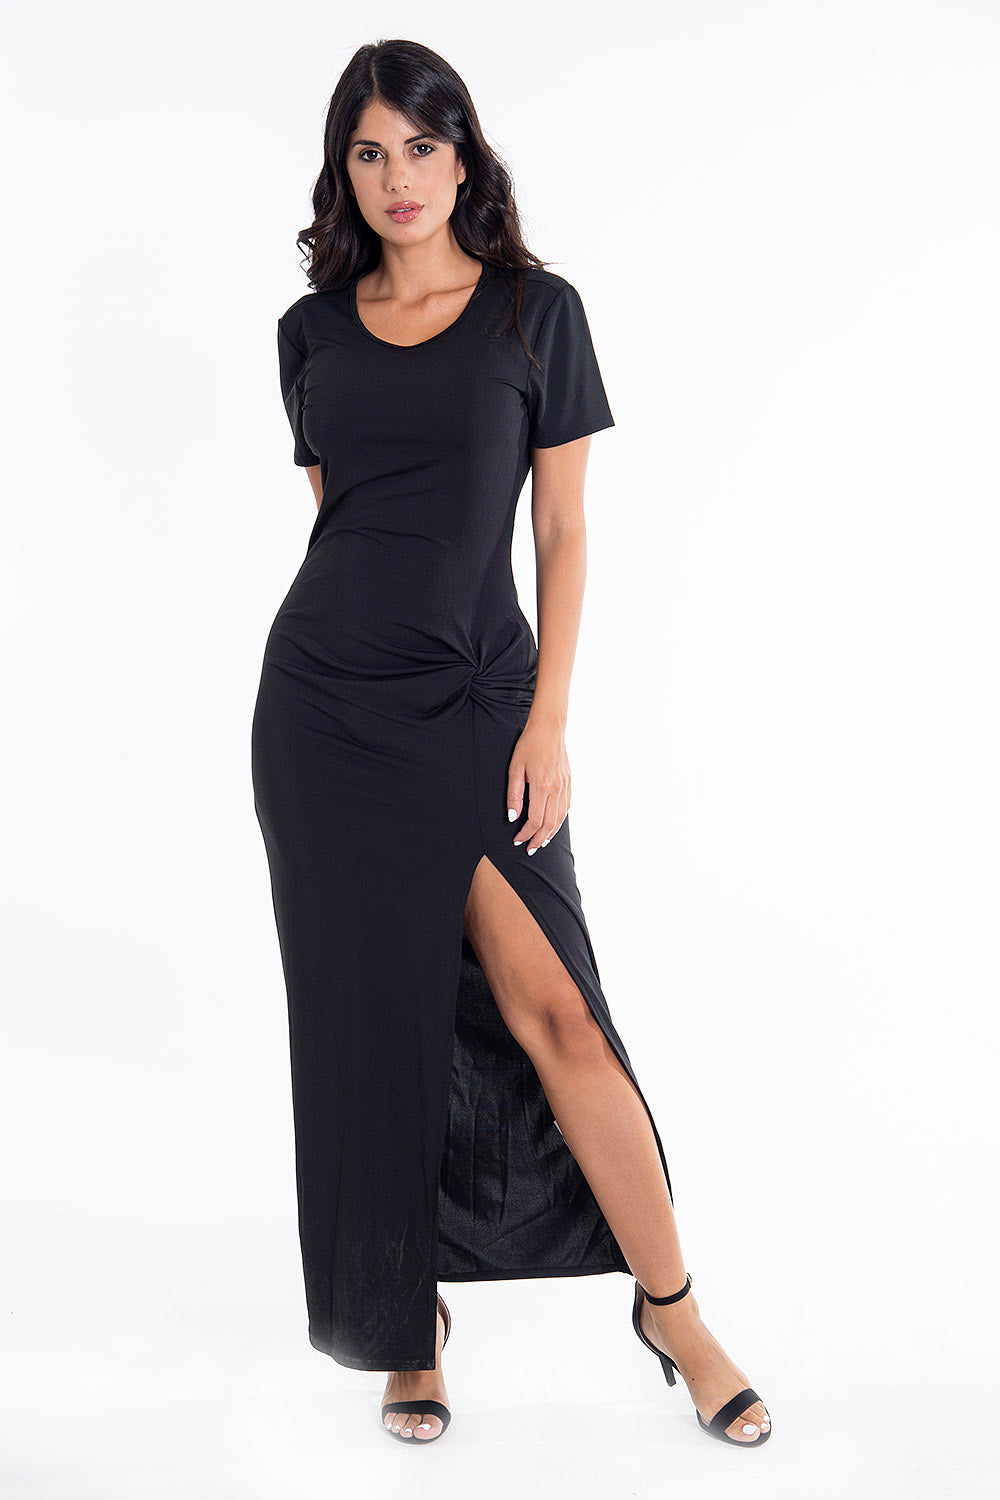 Sh midi ruched detail basic black dress